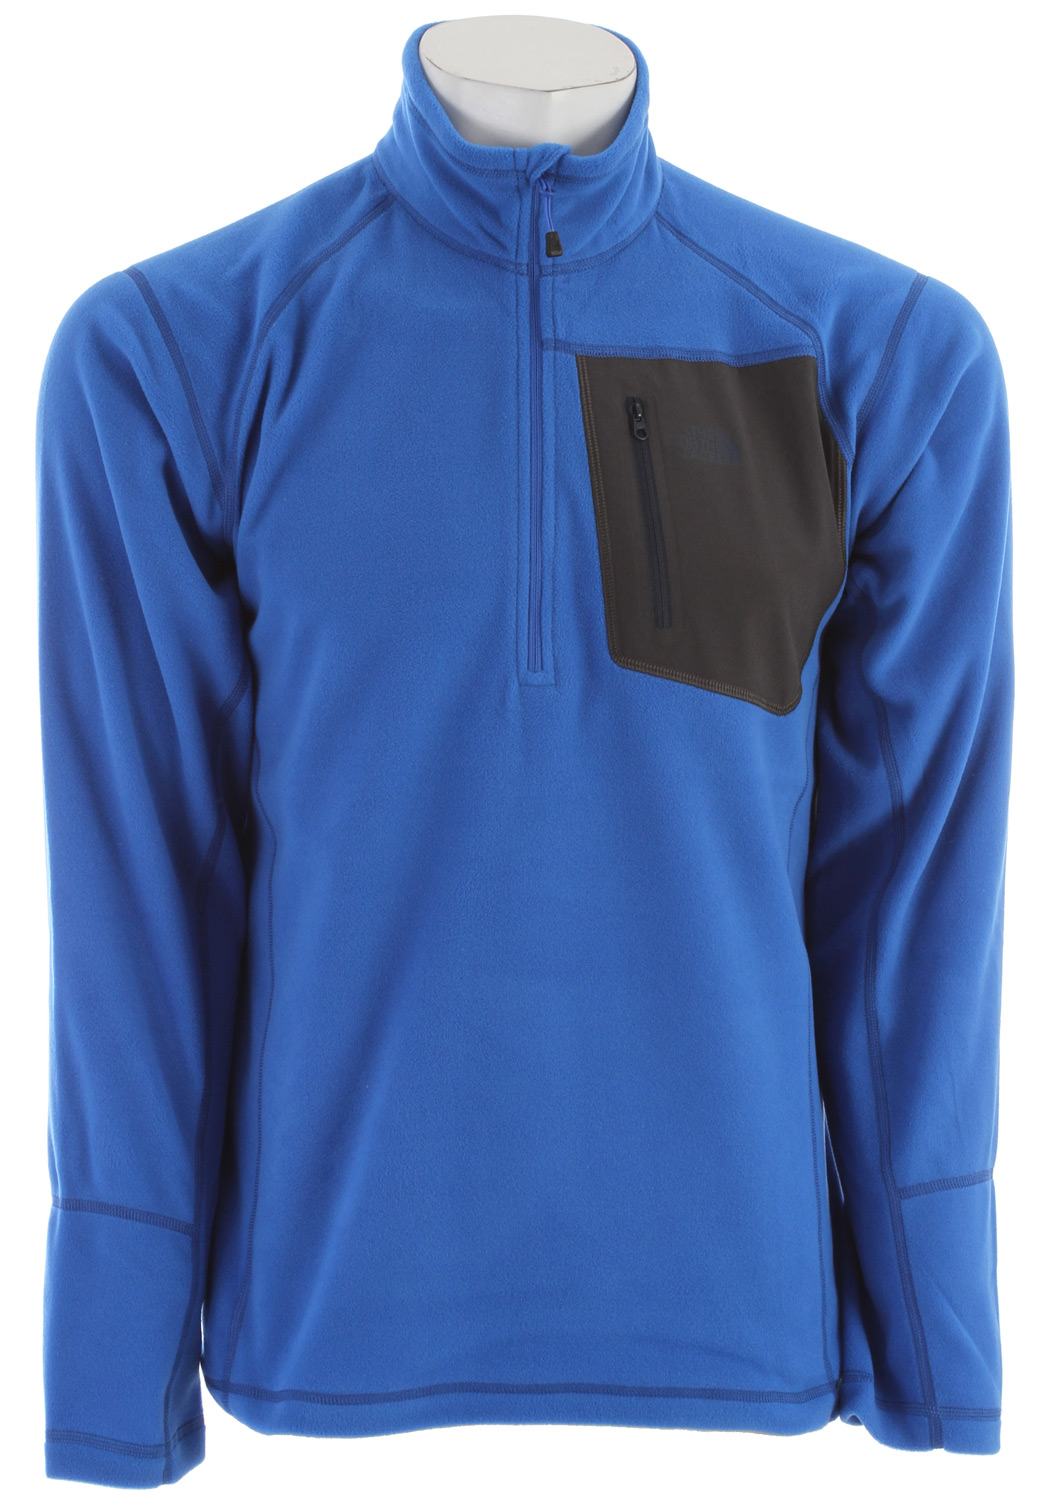 "A breathable, quick-drying midweight zip-neck constructed with Polartec fleece ideal for layering. Key Features of The North Face Tka 100 Trinity Alps 1/4 Zip Jacket: Fabric: 160 g/m (4.64 oz/yd ) 100% polyester Center Back: 27.5"" Midweight layering piece Ultraviolet Protection Factor (UPF) Secure Napoleon zip pocket Flat-locked stitching for strength and reduced abrasion Reverse-coil zips for finished look - $44.95"